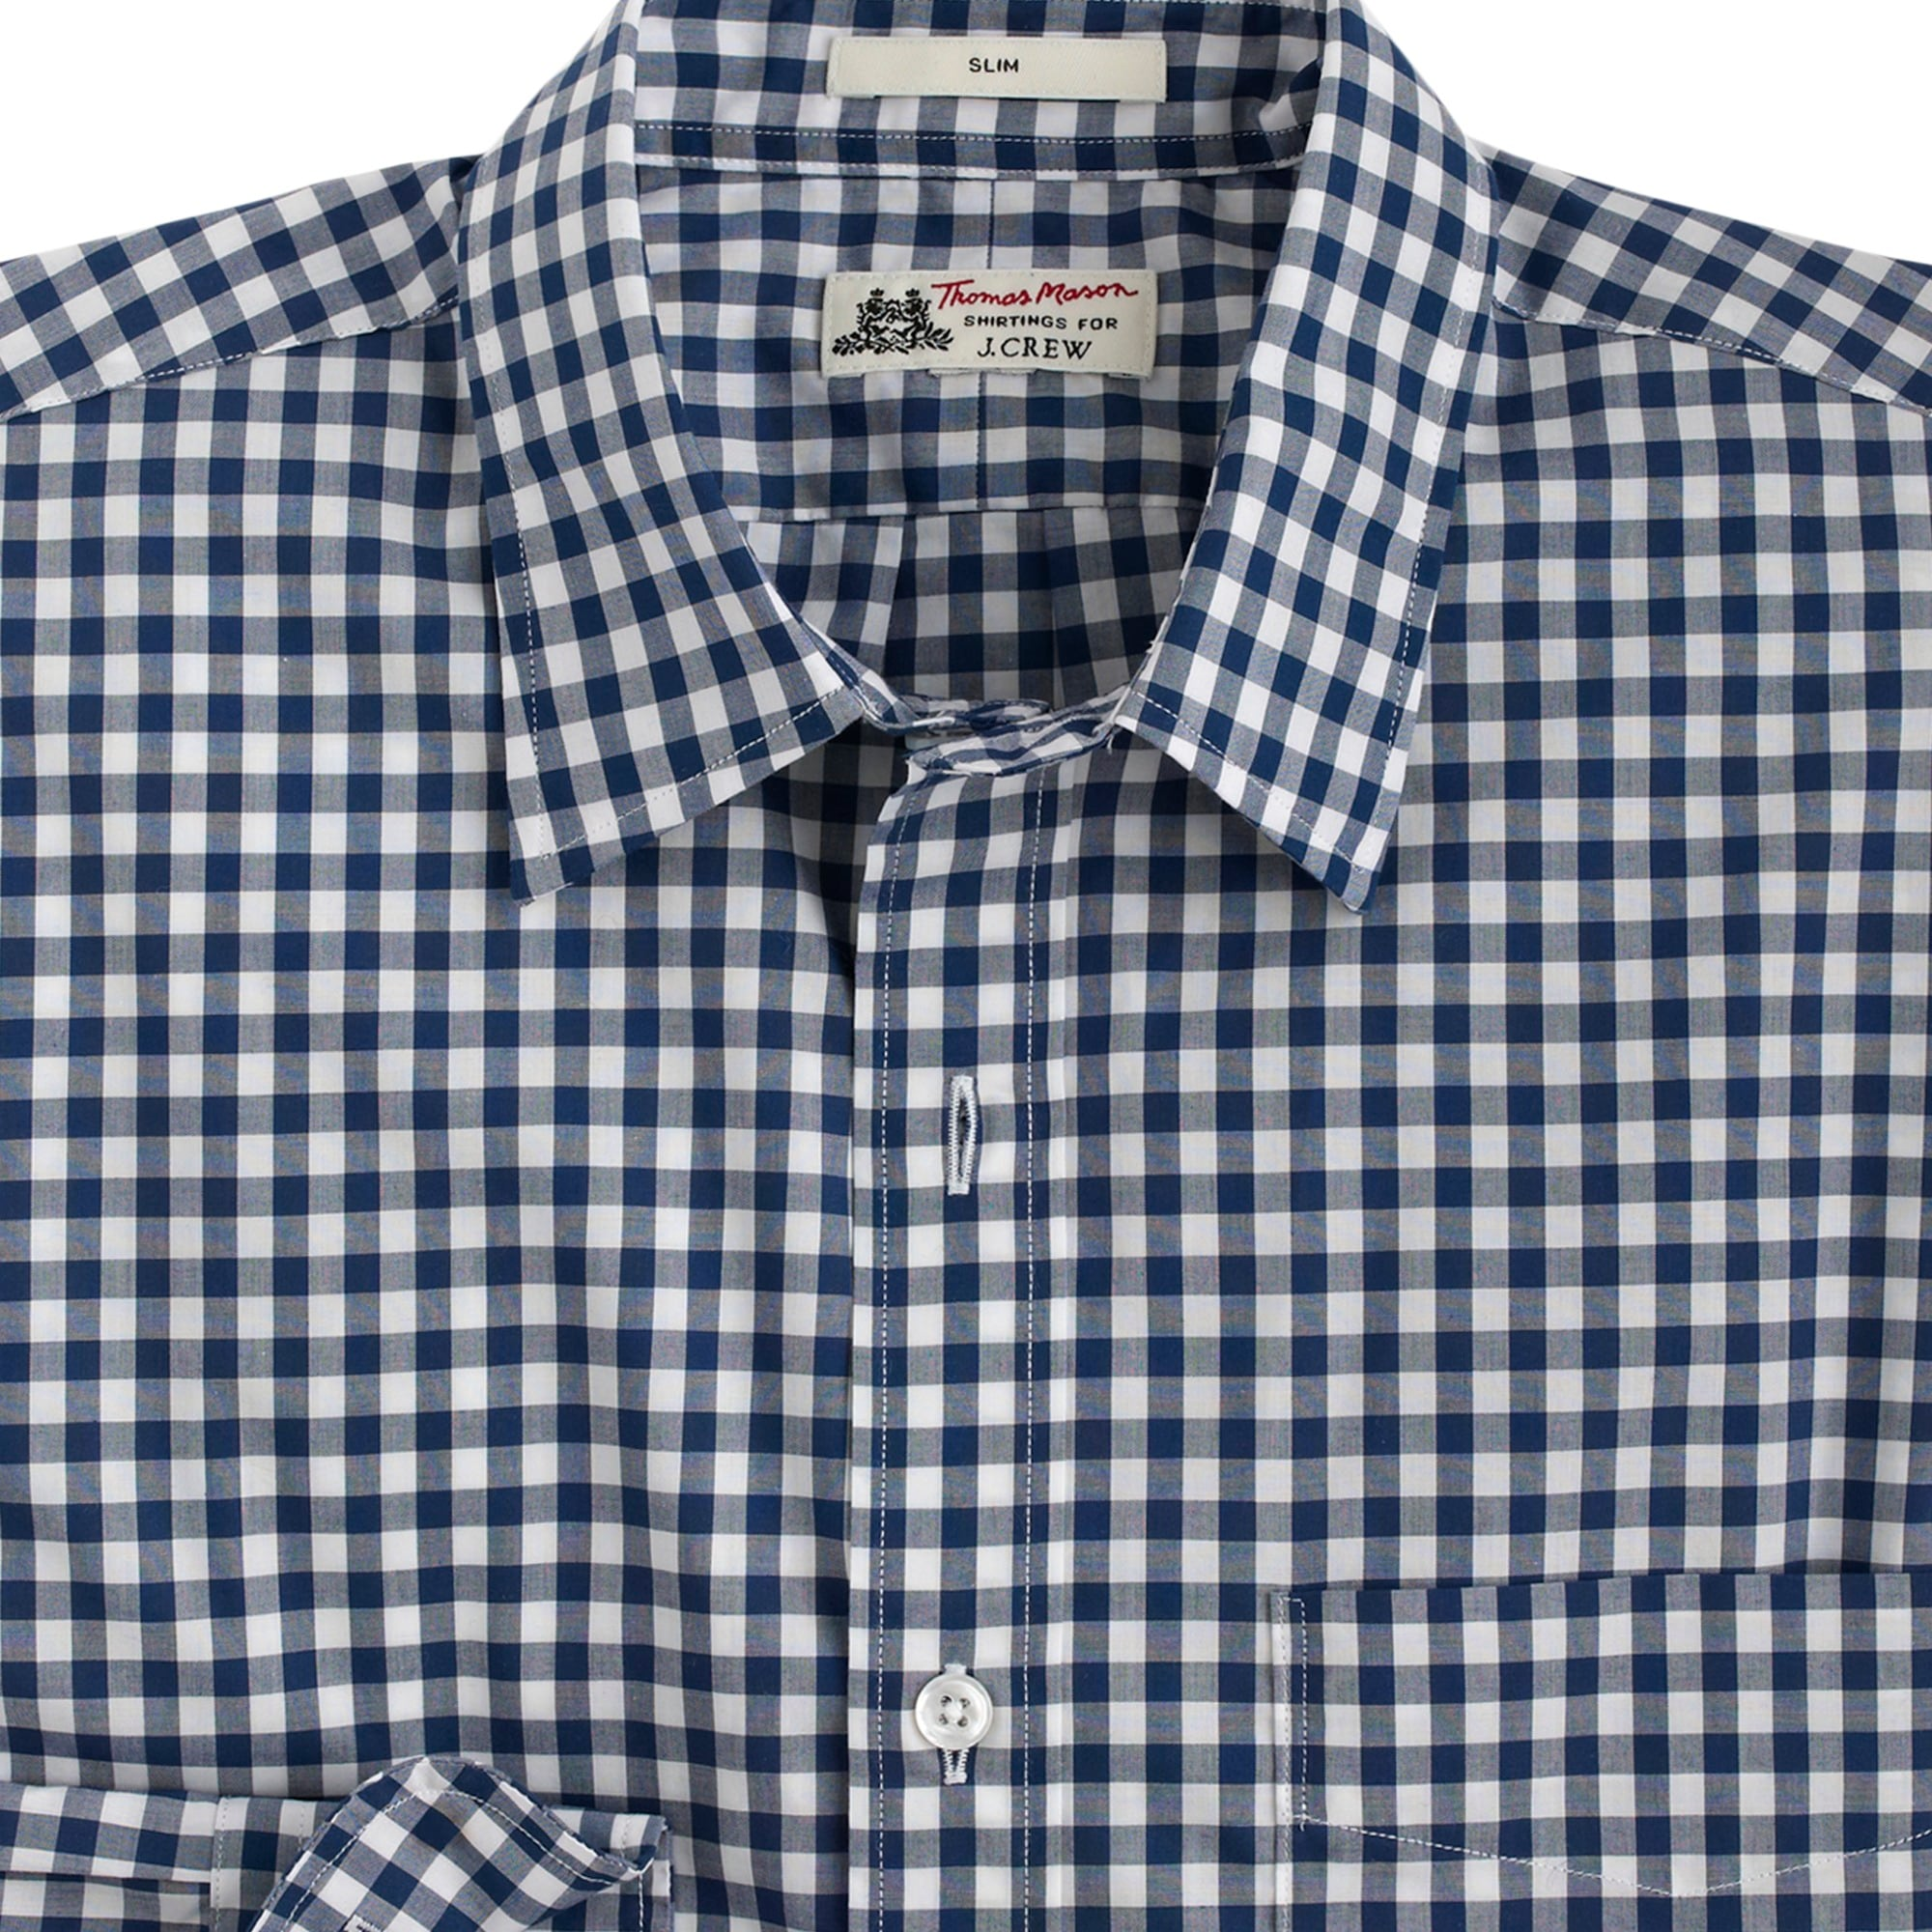 slim thomas mason for j.crew shirt in bedford blue gingham : men's shirts